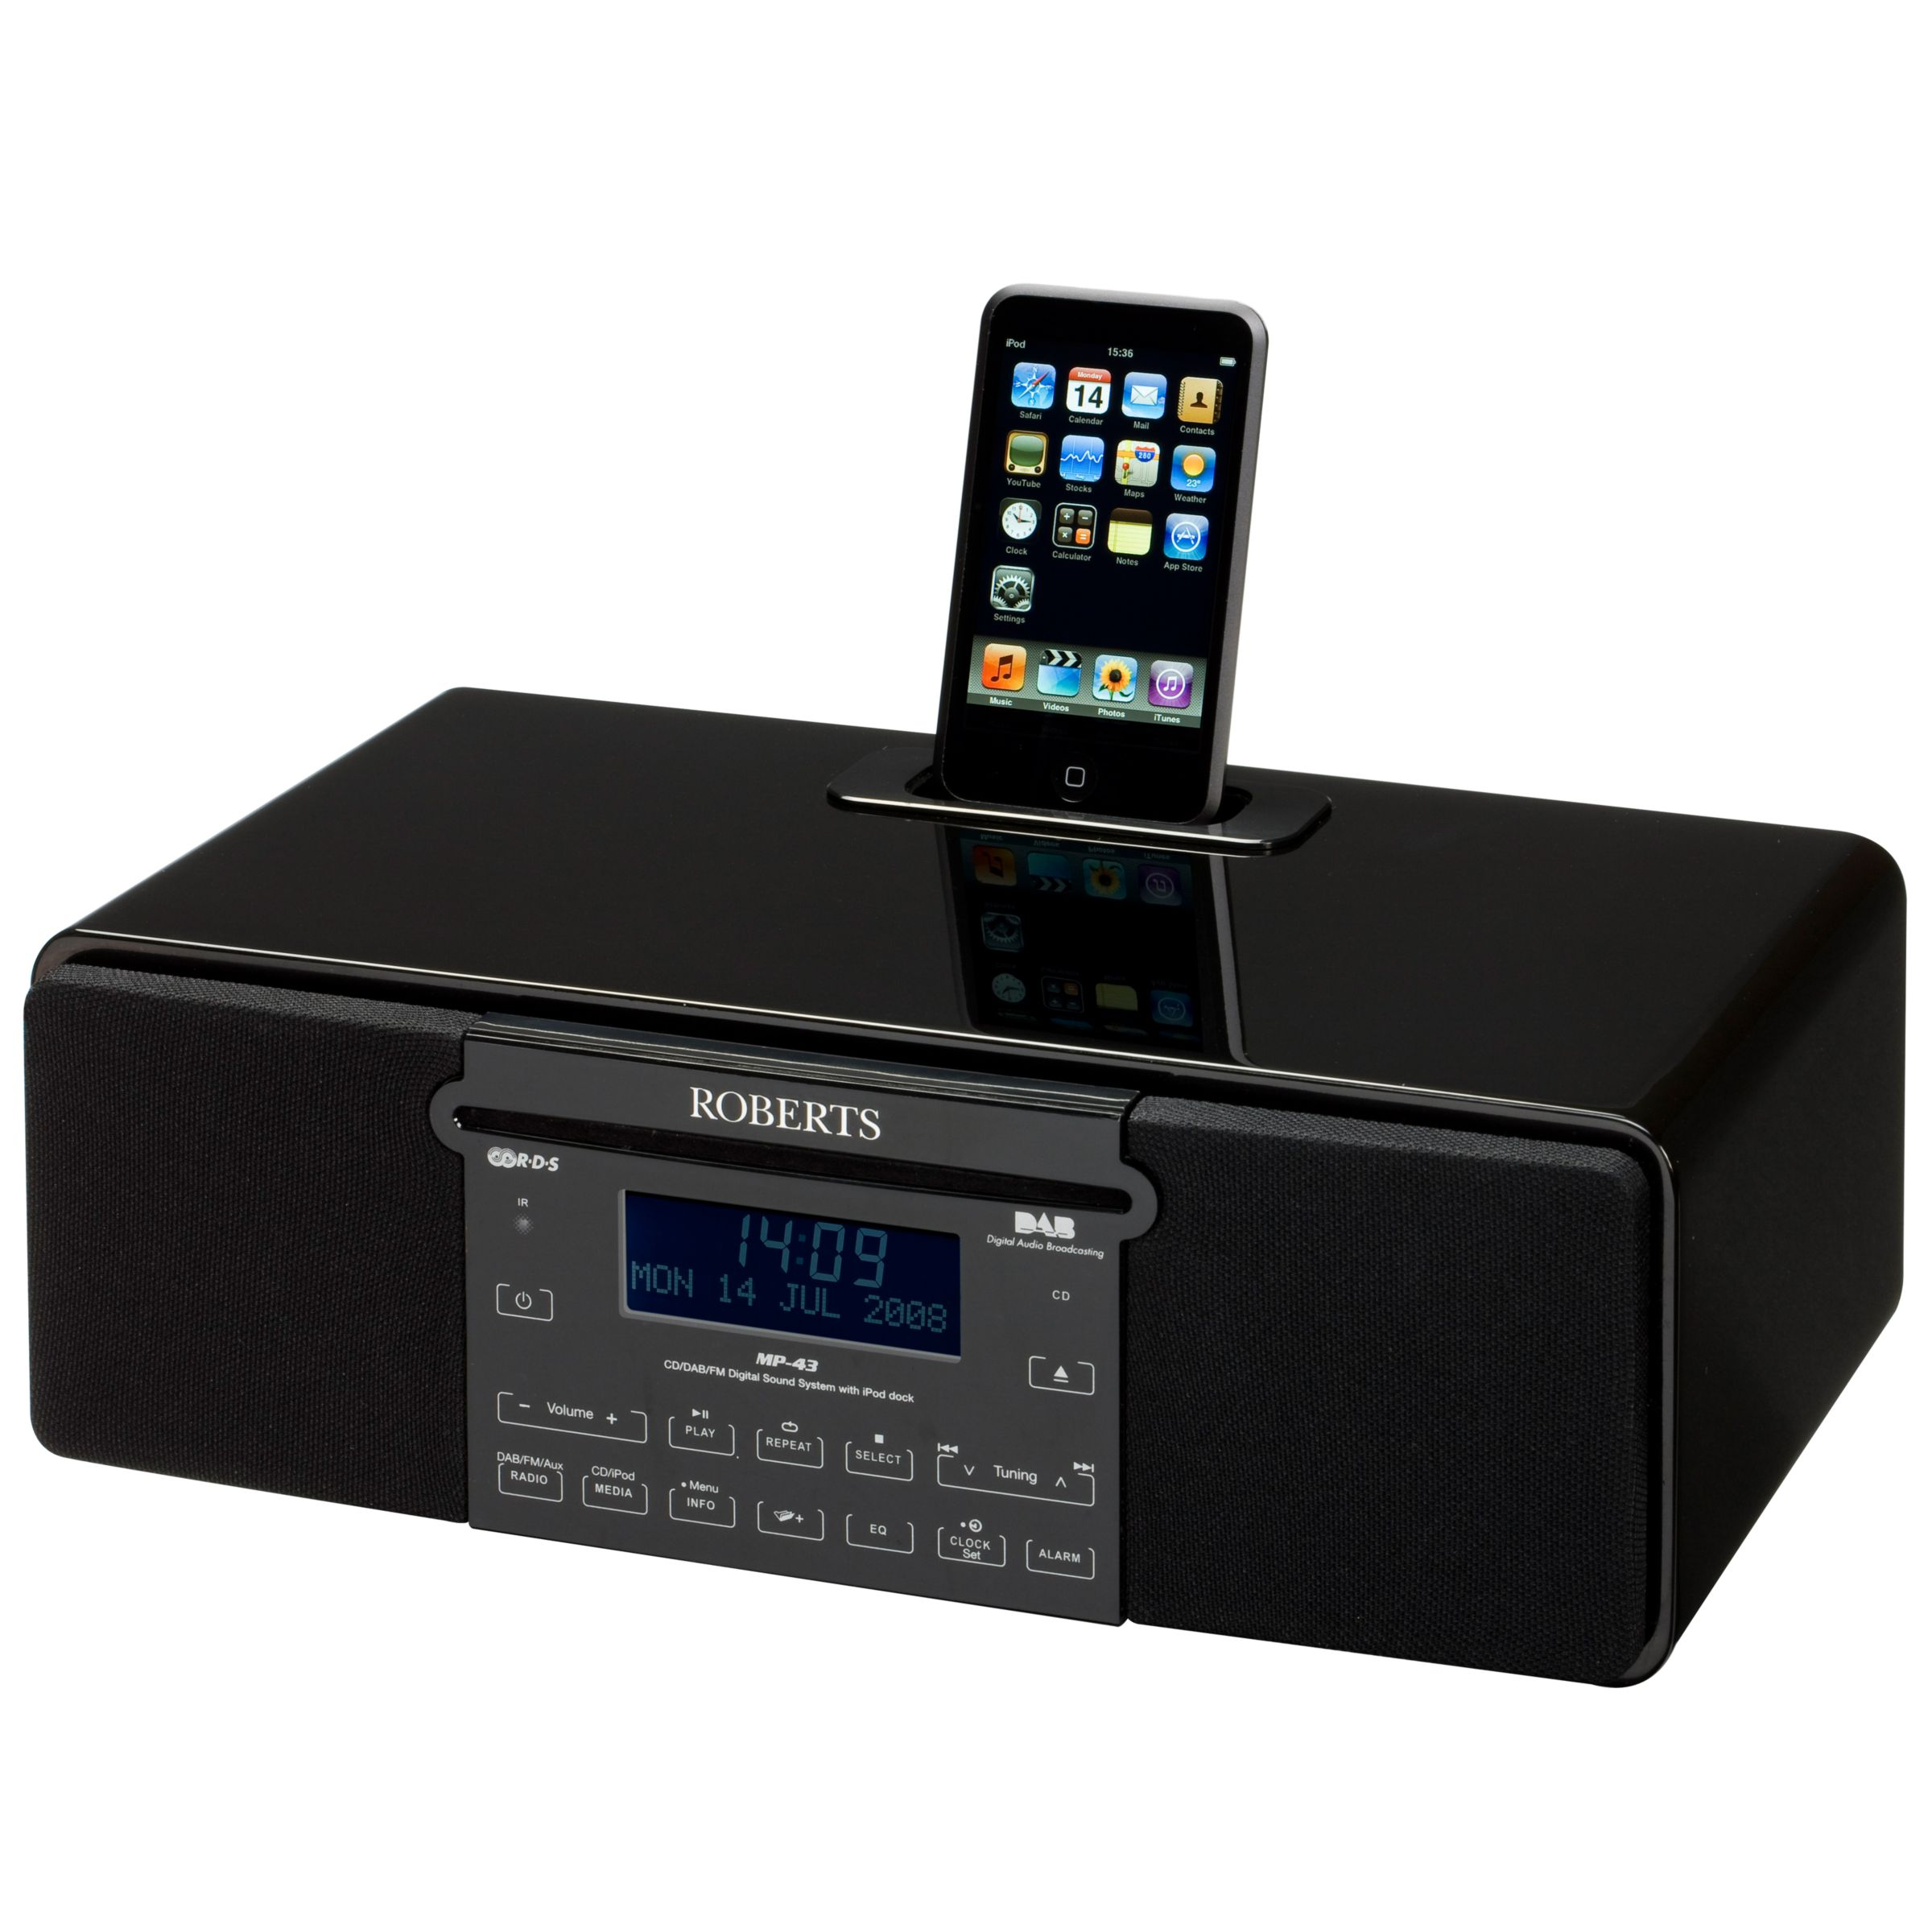 ROBERTS SOUND 43 DAB/CD iPod Dock Radio, Piano Black at JohnLewis